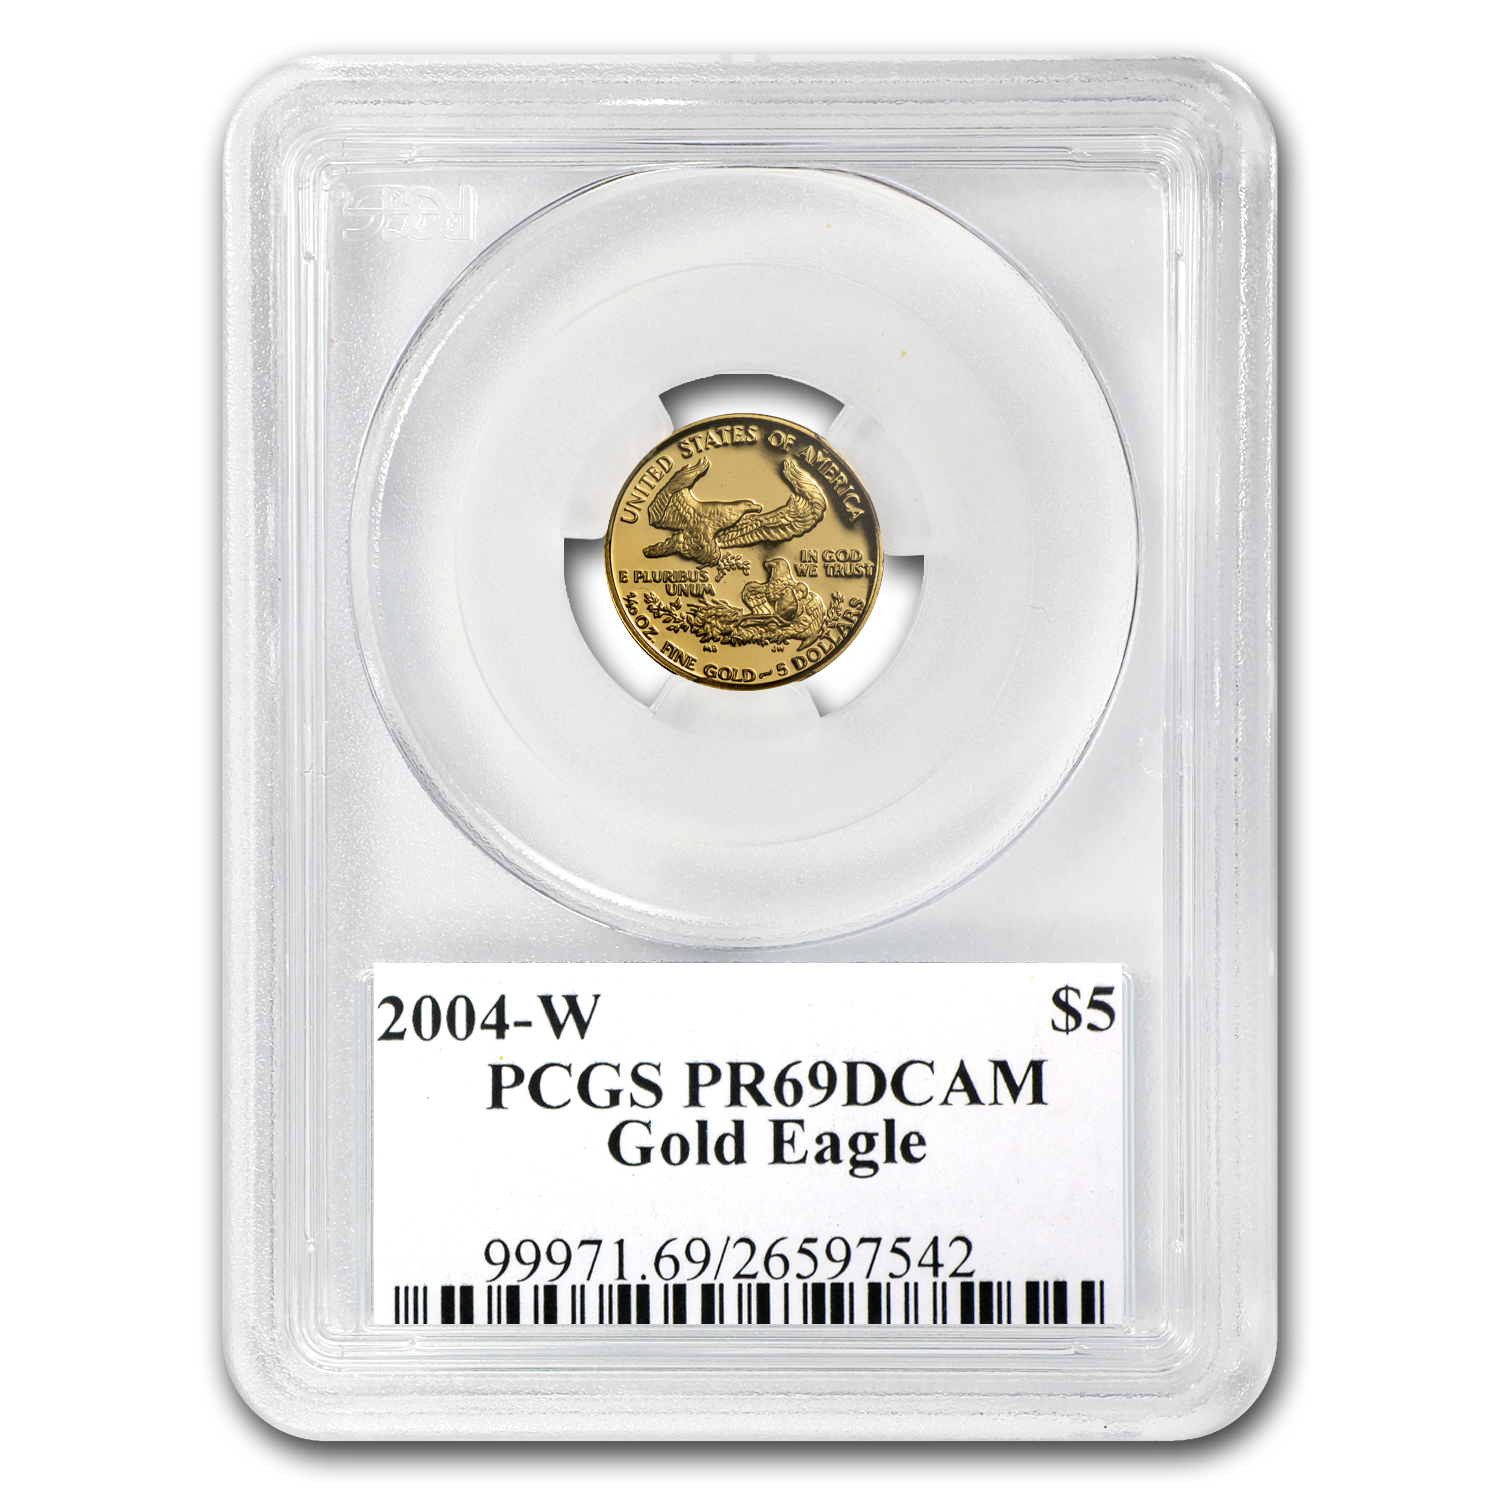 2004-W 1/10 oz Proof Gold American Eagle PR-69 PCGS John Mercanti